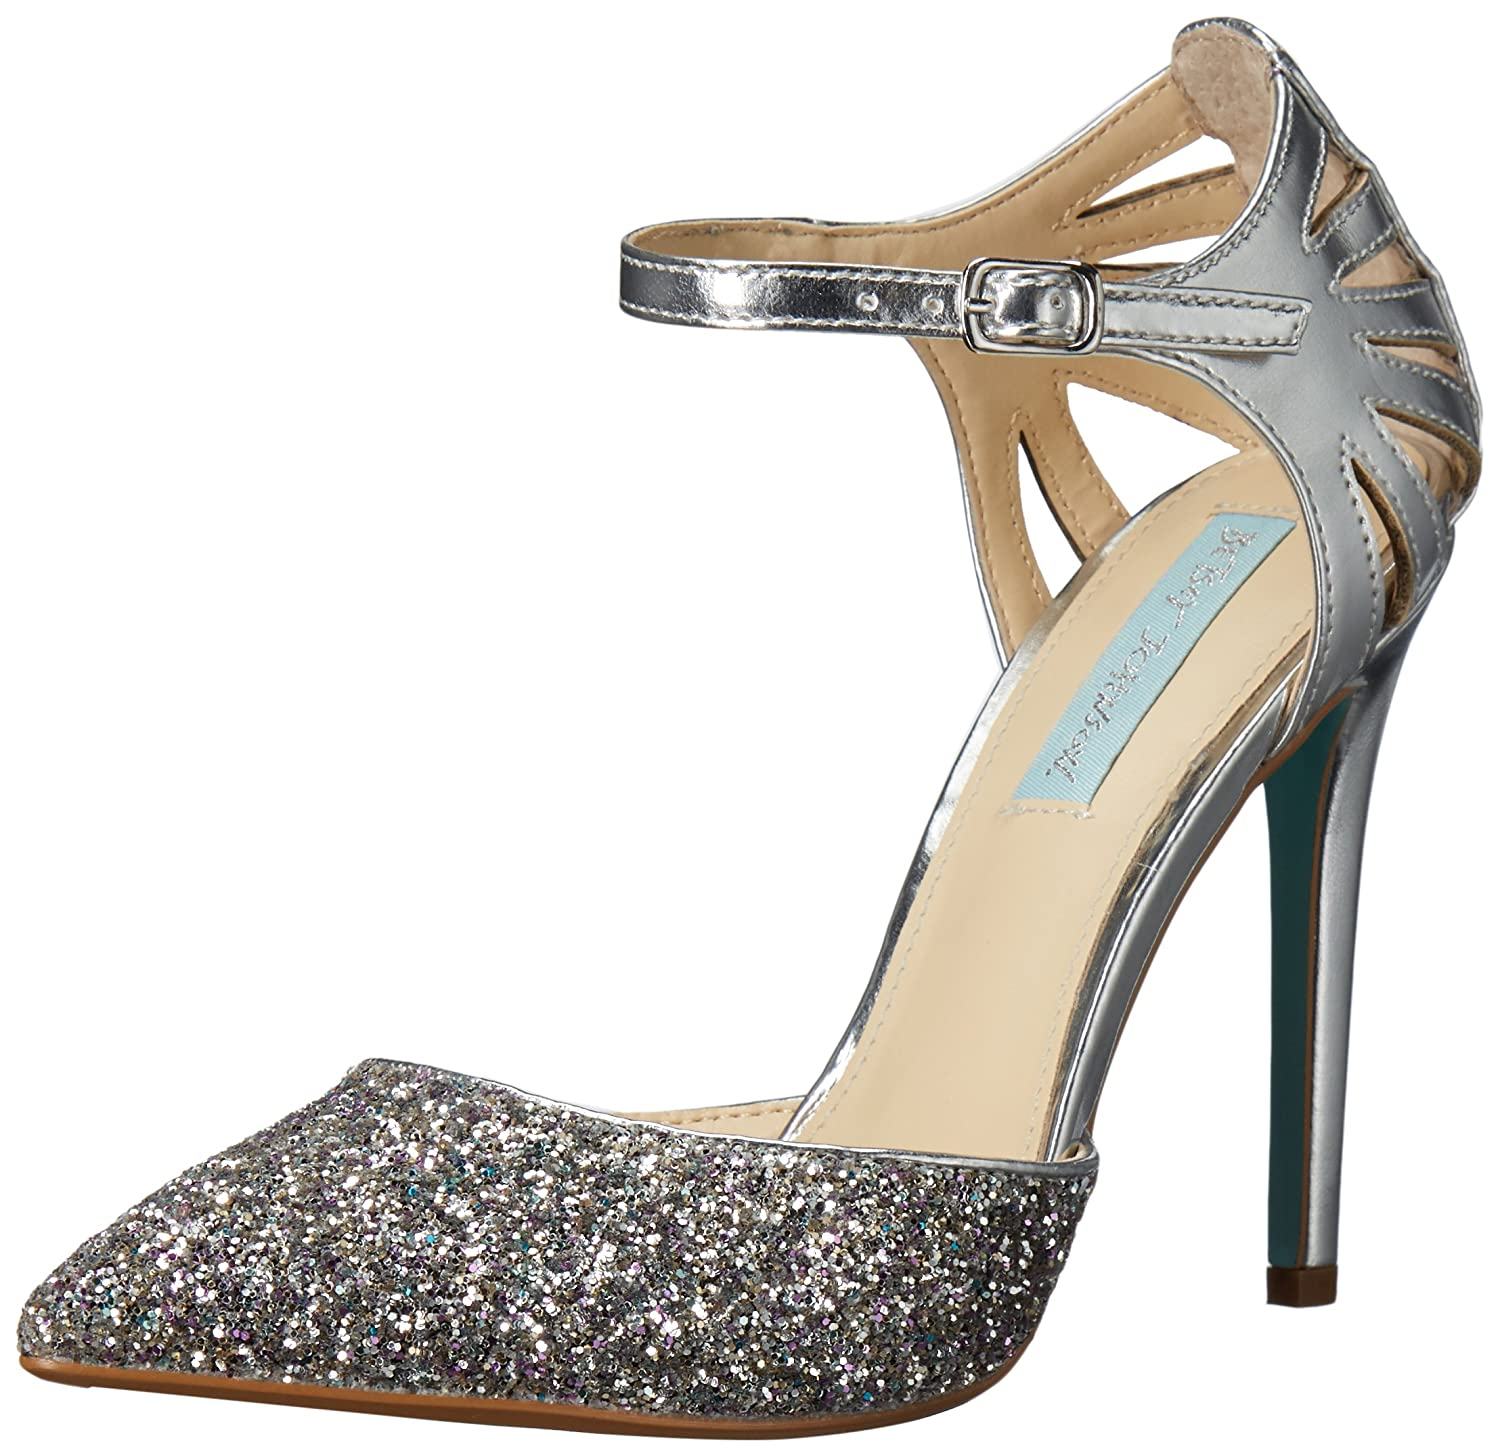 Blue by Betsey Johnson Women's Sb-Avery Dress Pump B06XRZTWKY 9 M US|Silver/Metallic